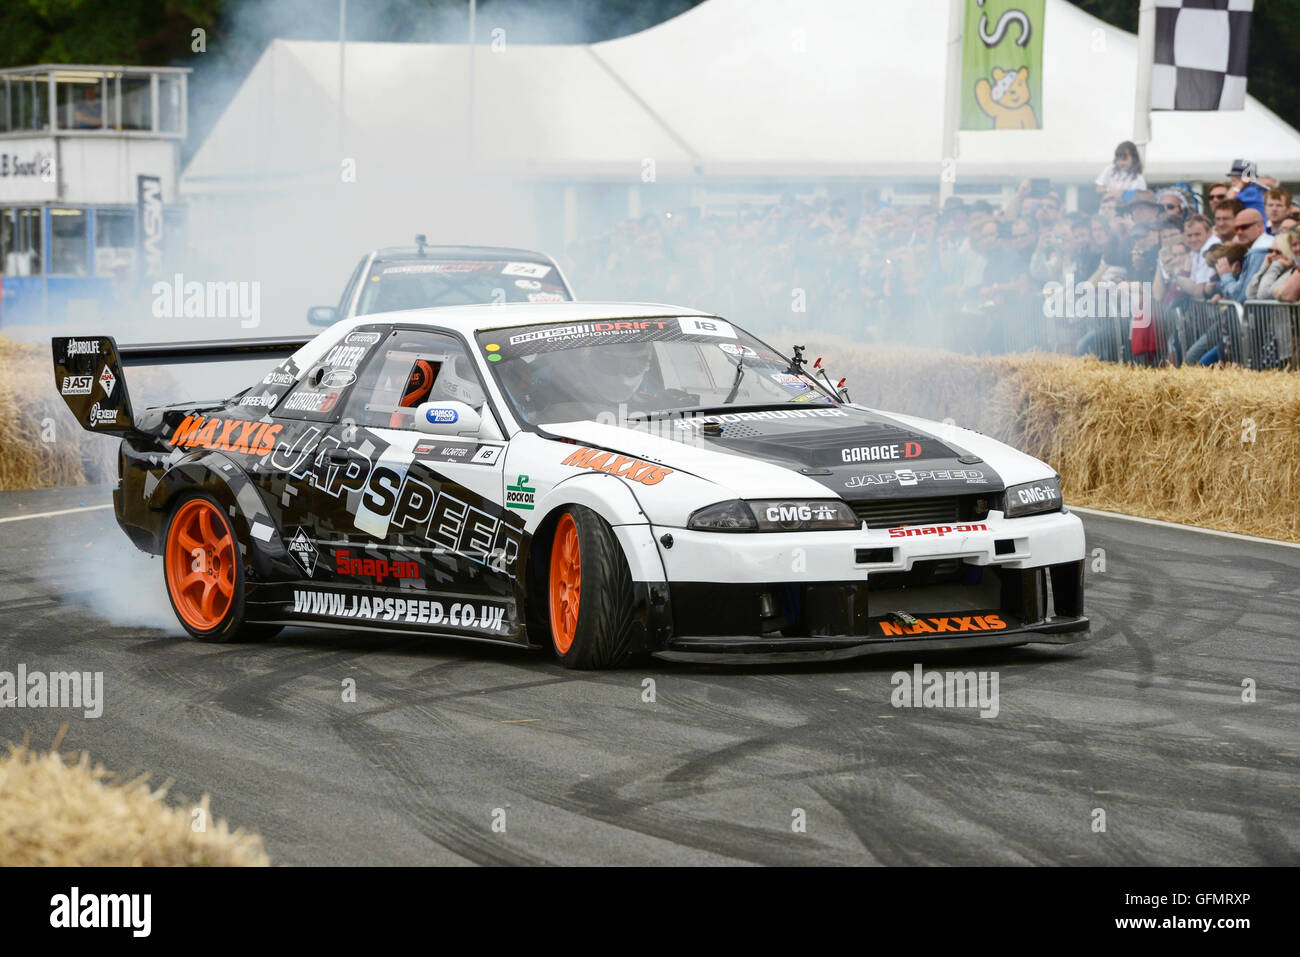 Carfest North Bolesworth Cheshire Uk July Two Drift